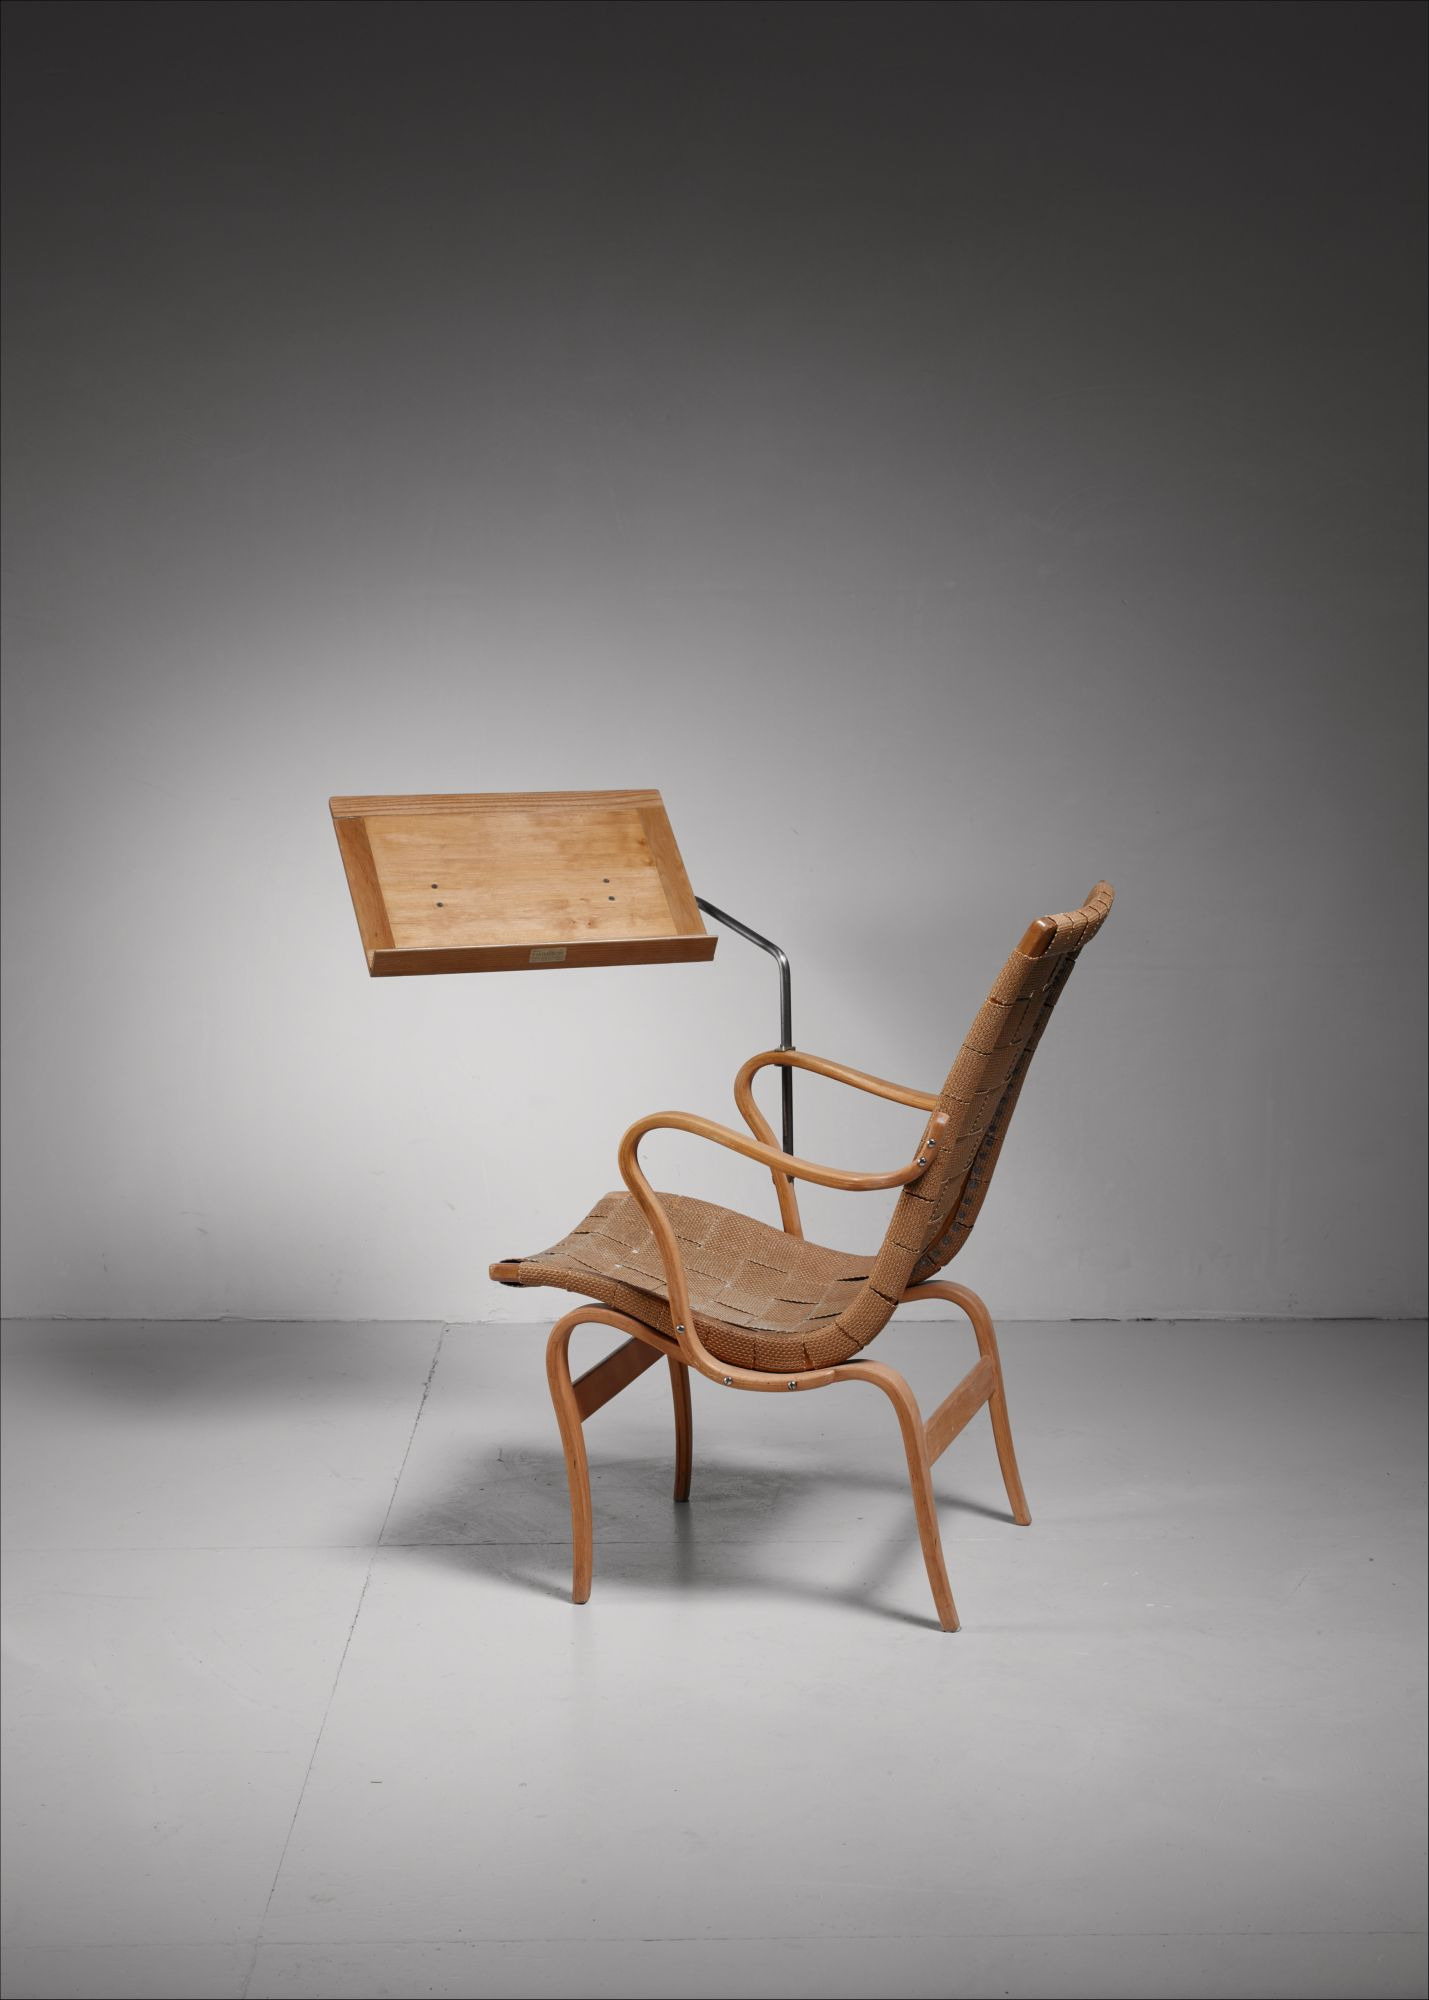 Cool Bruno Mathsson Reading Chair Eva With Ottoman Sweden 1940S Andrewgaddart Wooden Chair Designs For Living Room Andrewgaddartcom